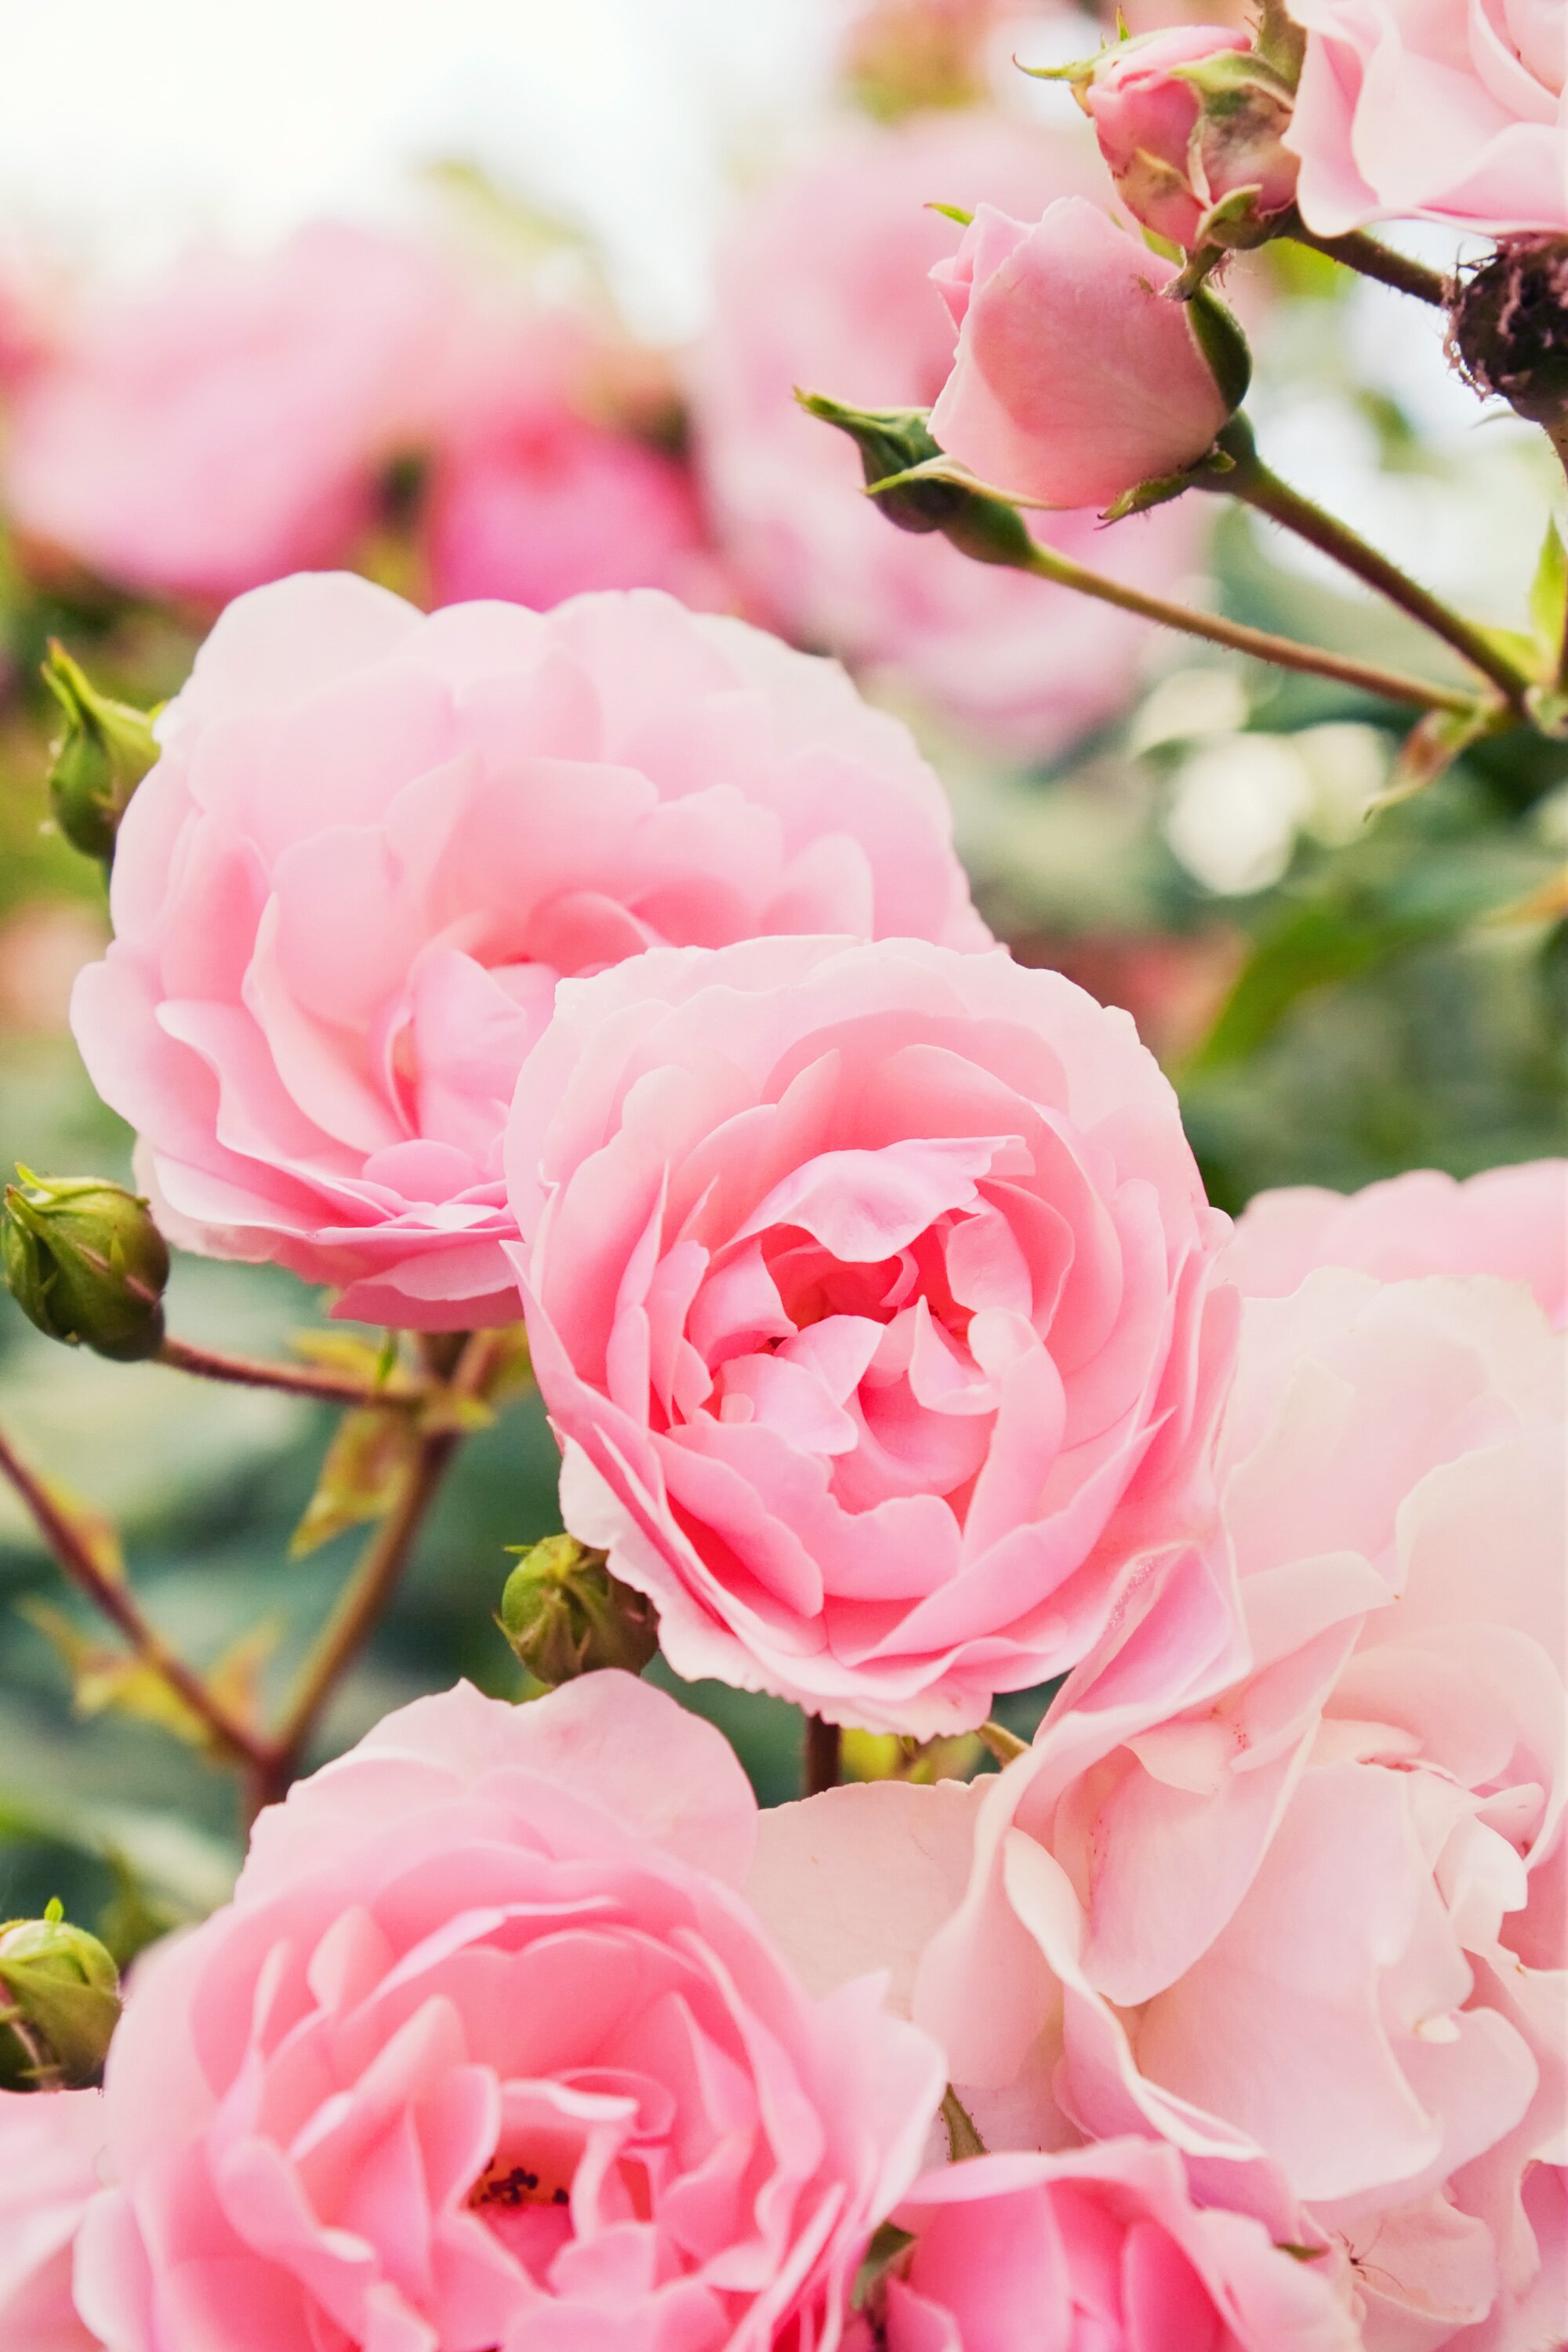 How Epsom Salts Can Help Your Roses Martha Stewart